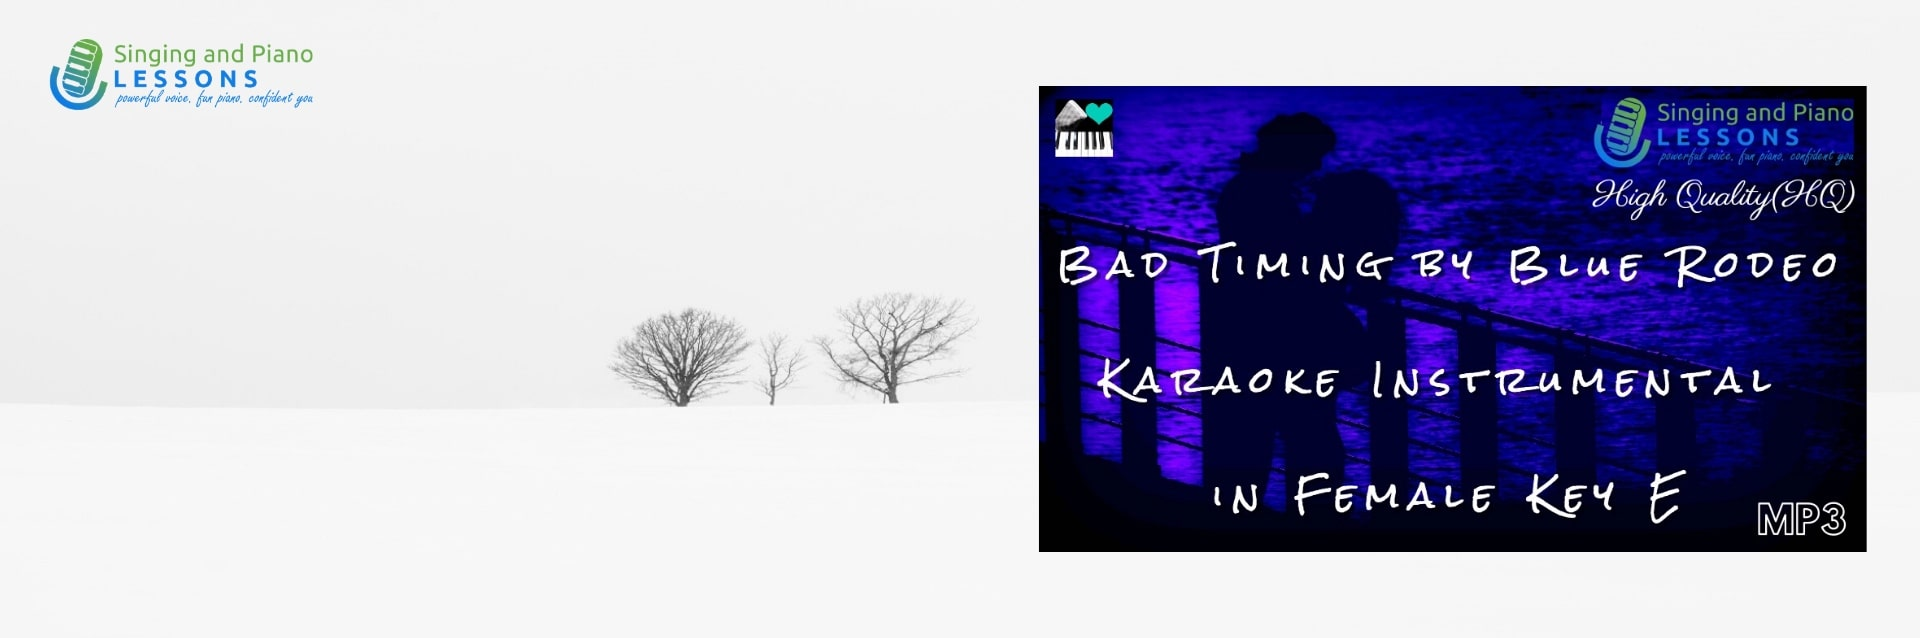 Bad Timing by Blue Rodeo Karaoke Instrumental in Female Key E/ Baritone for Males